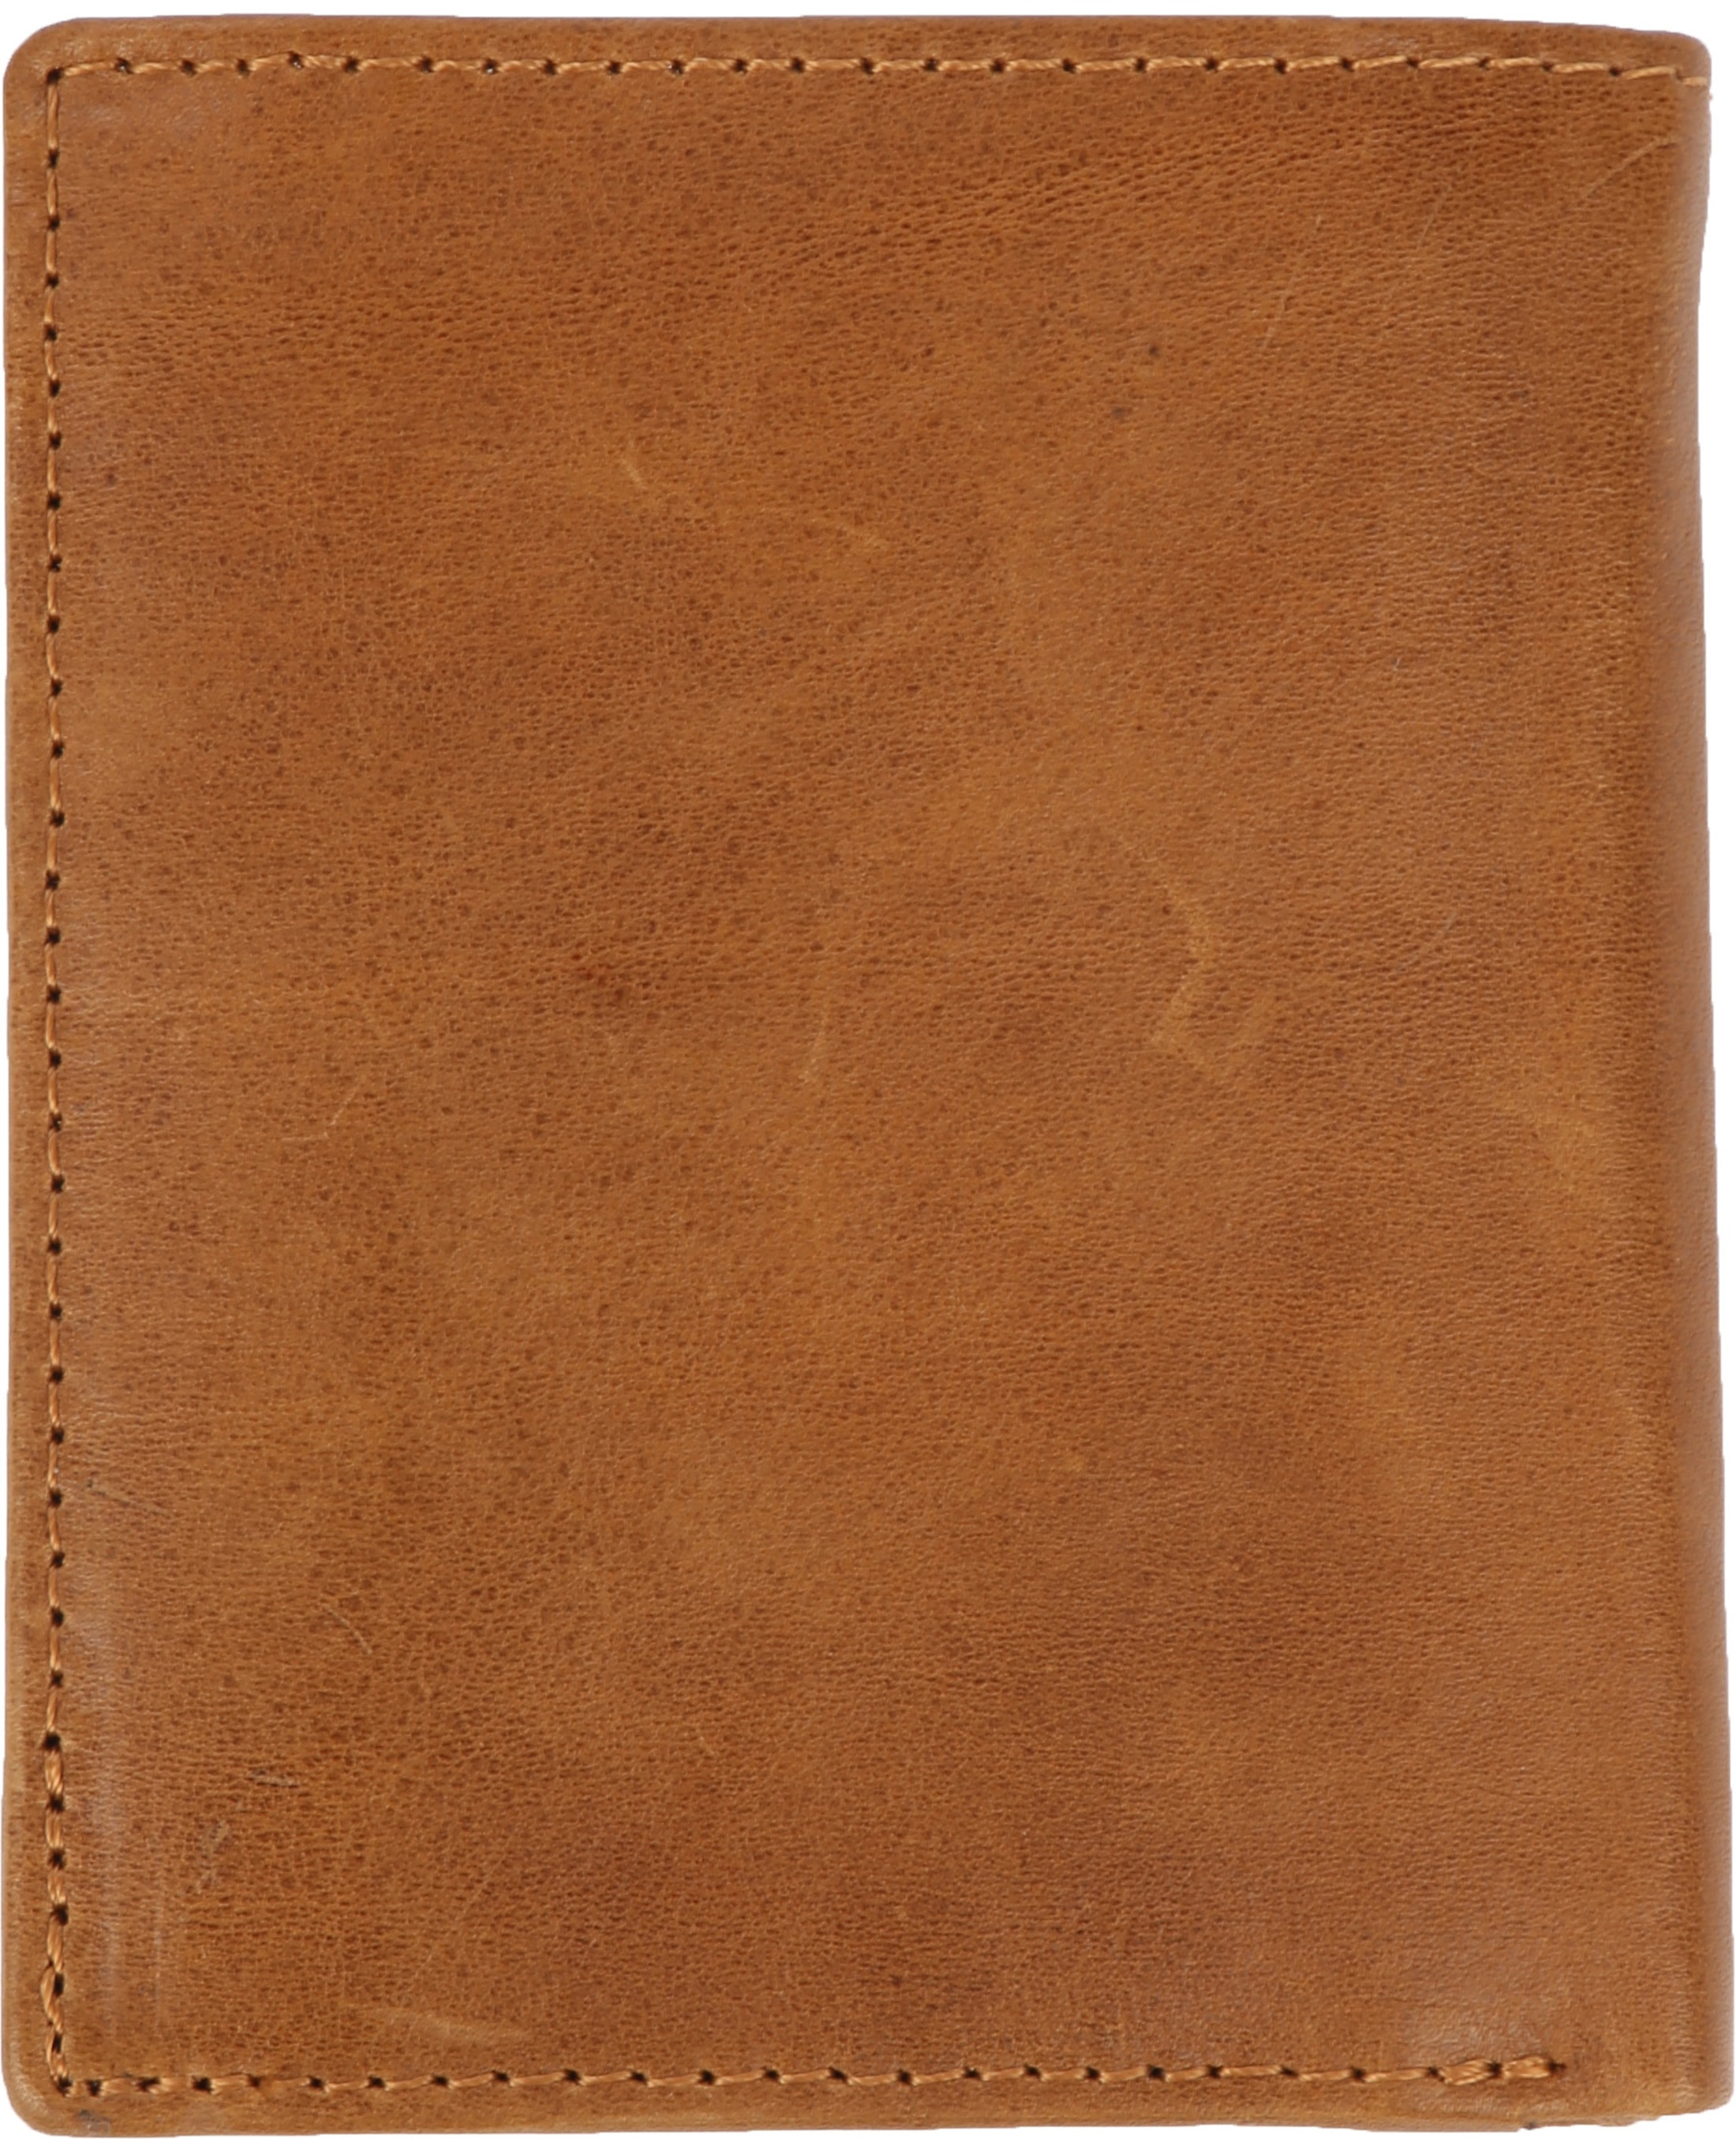 Suitable Wallet Nikkei Light Brown Leather - Skim Proof